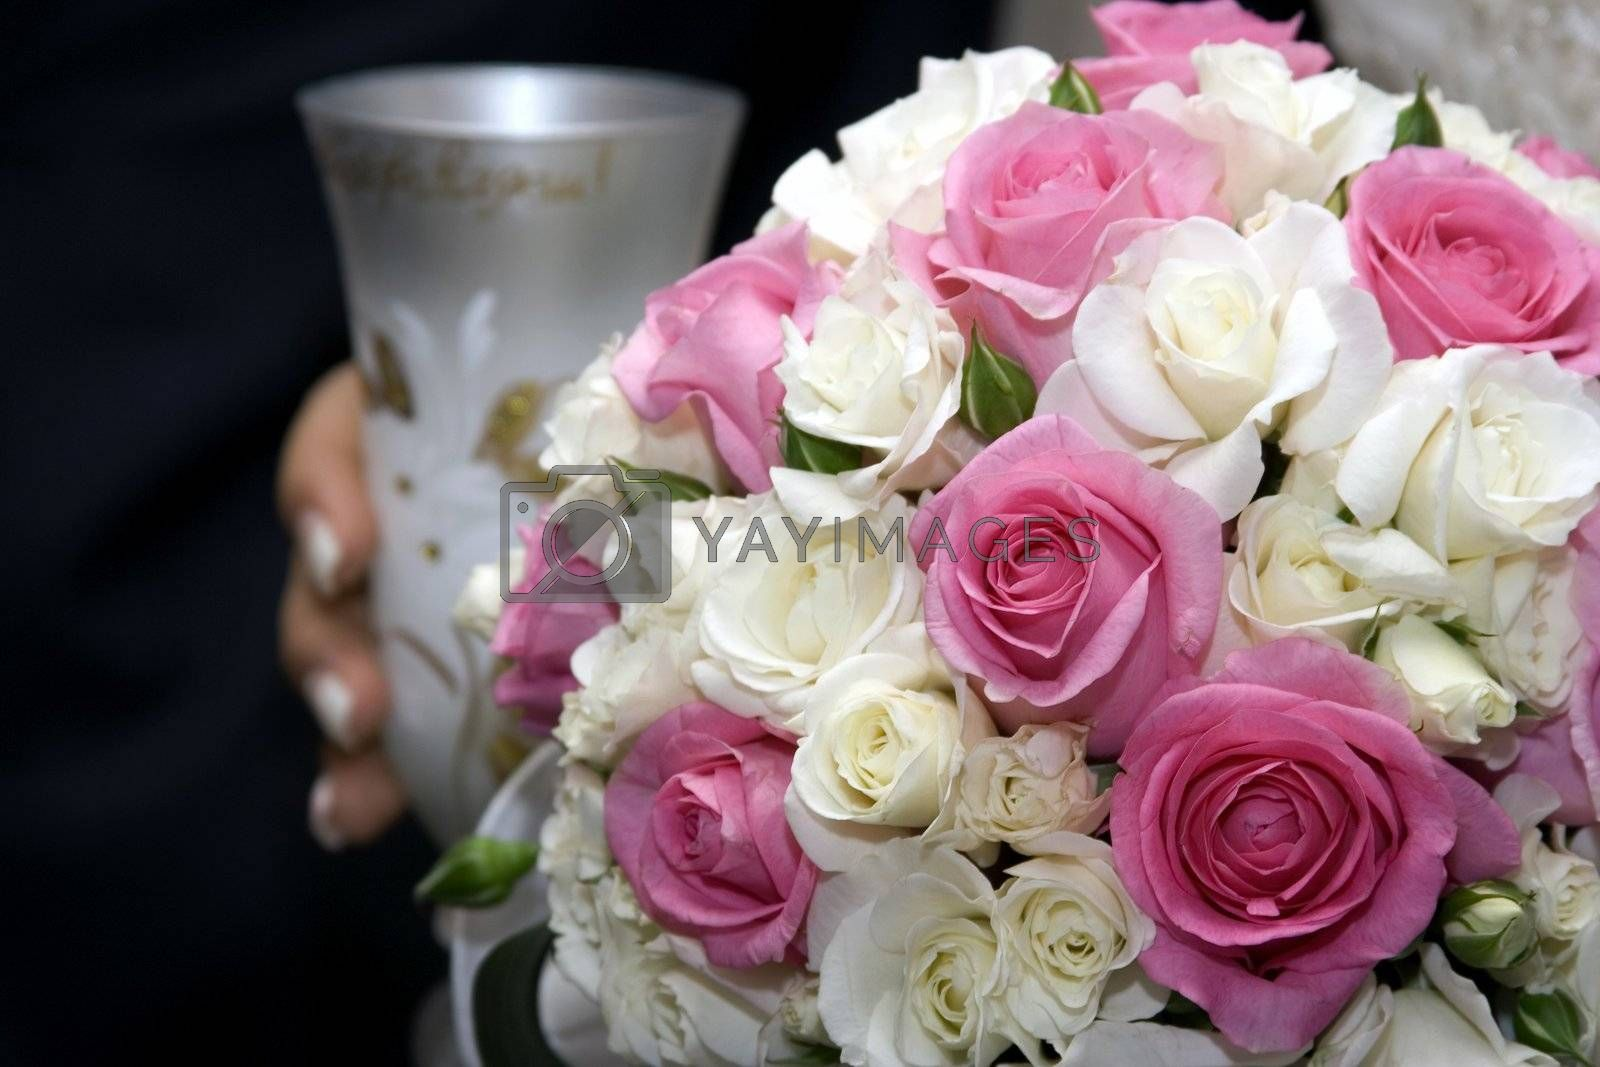 Royalty free image of Romantic wedding bouquet by janza